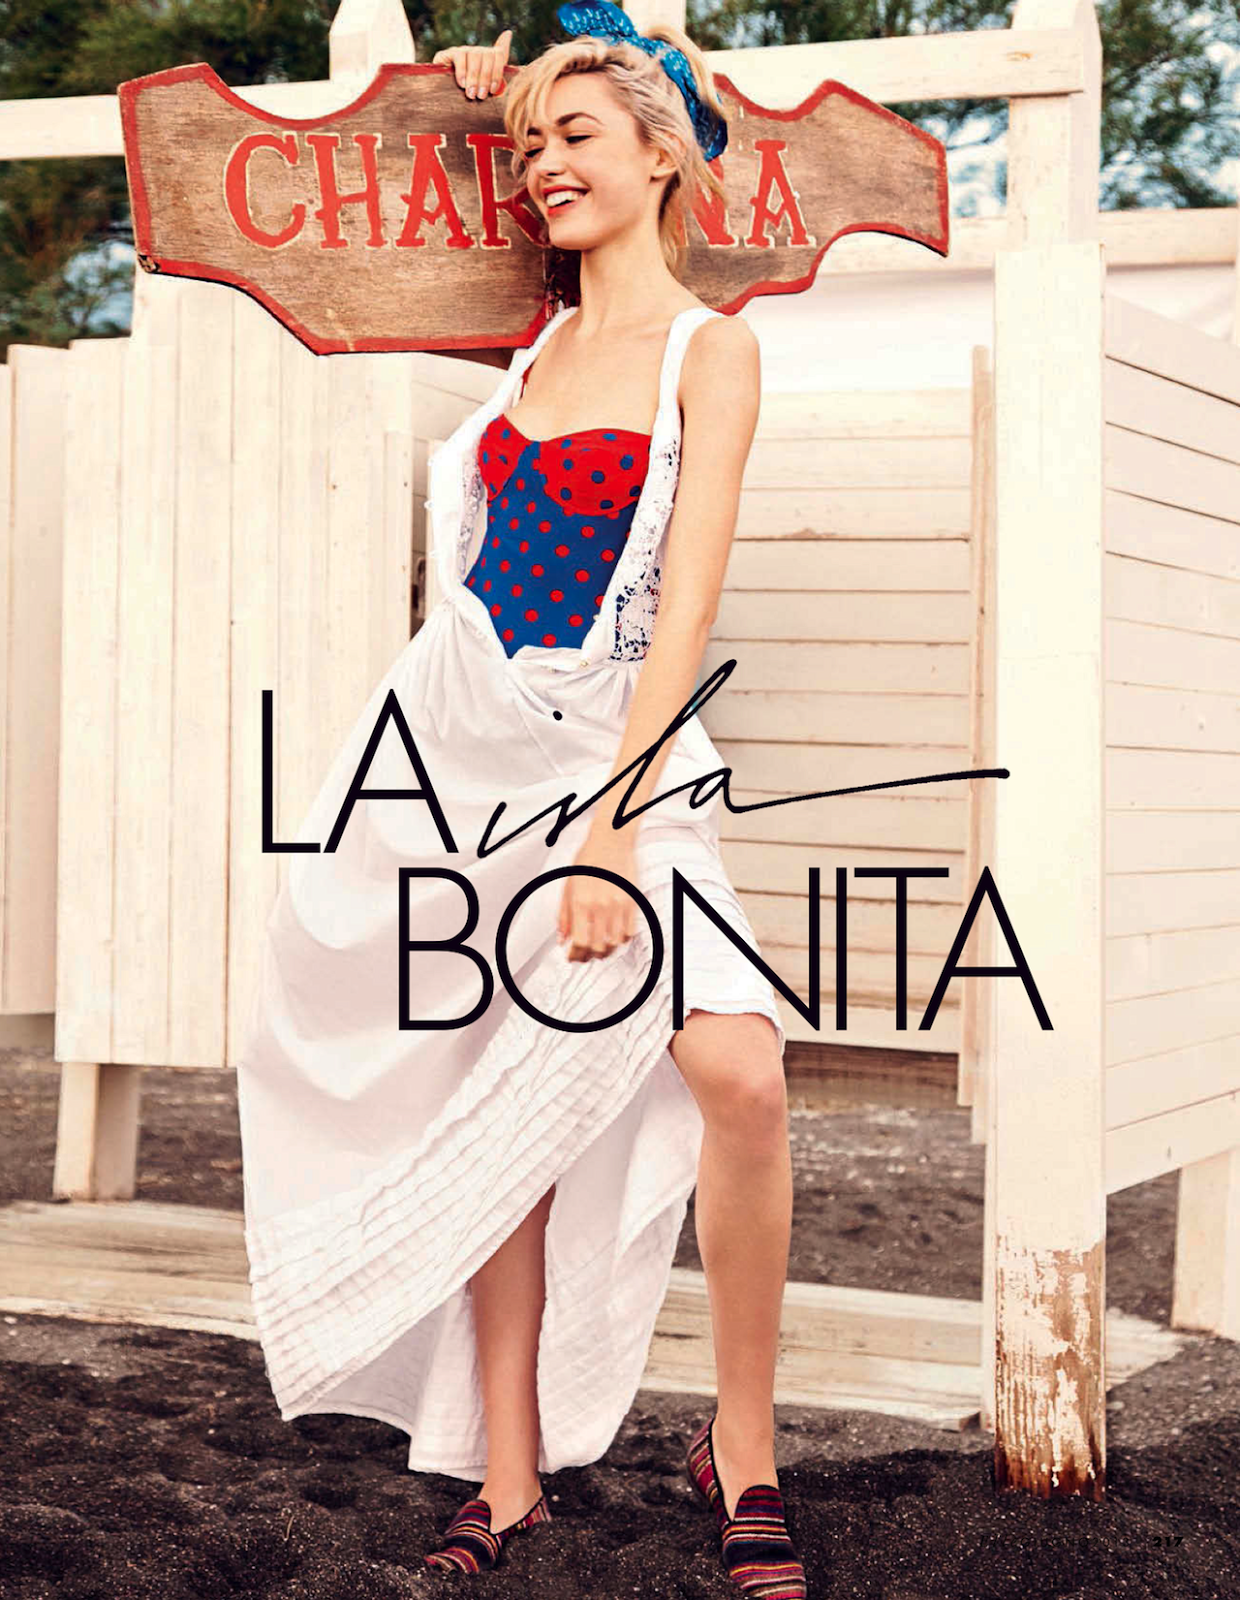 visual optimism; fashion editorials, shows, campaigns & more!: la isla bonita: cora keegan by carlotta manaigo for elle italia june 2013